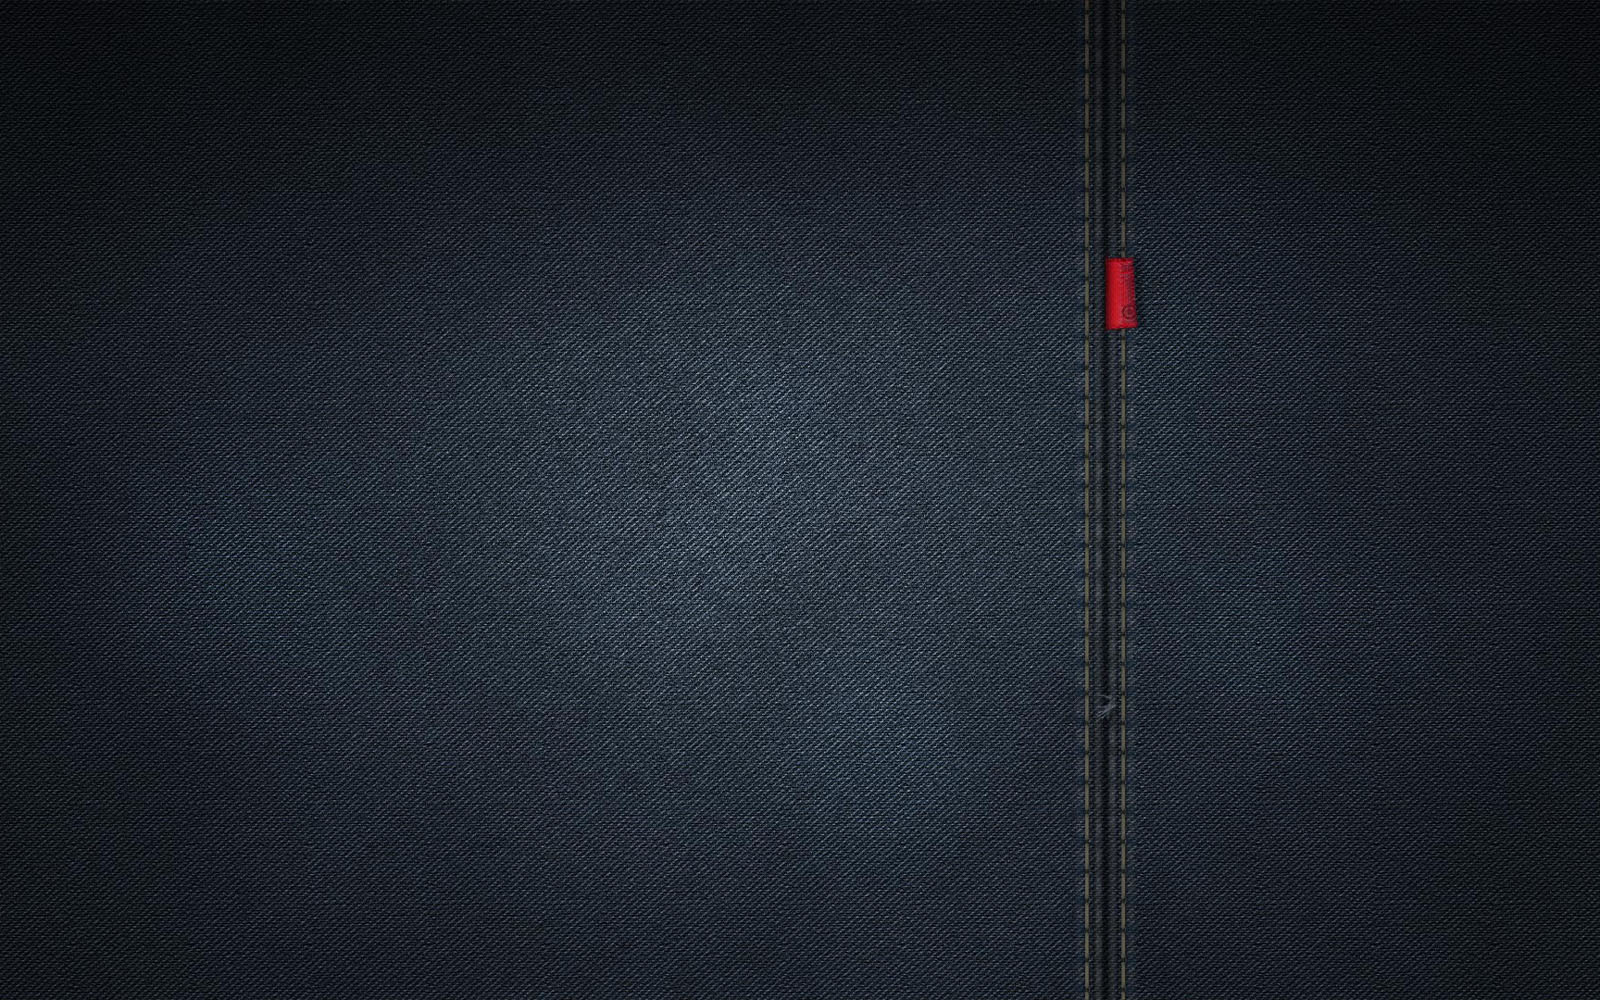 Wallpapers: Jeans Theme Wallpapers